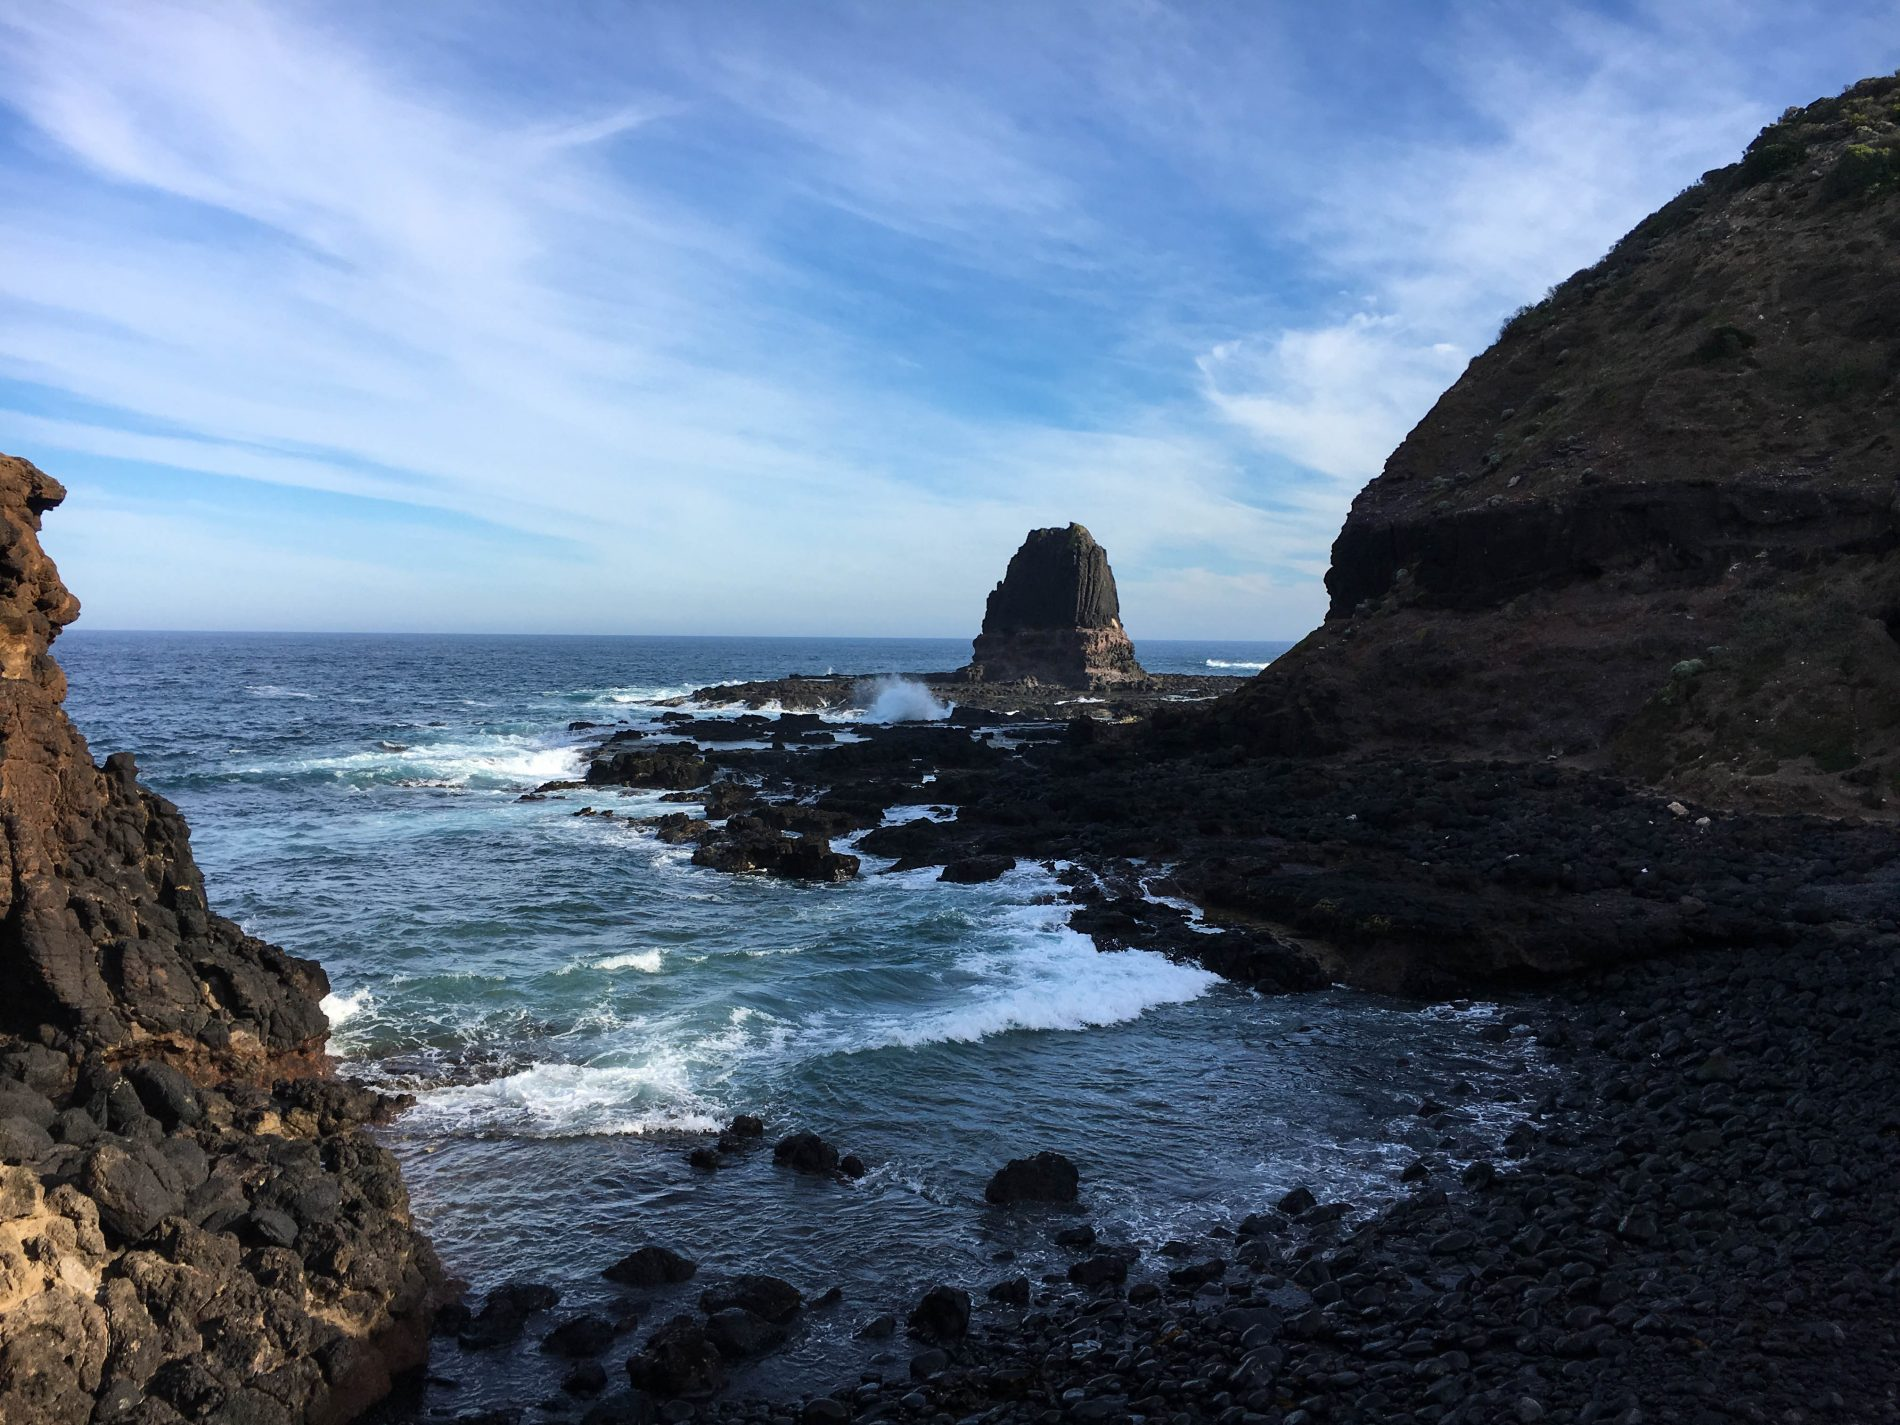 road trip en Van en Australie - Cape Schanck - Mornington Peninsula